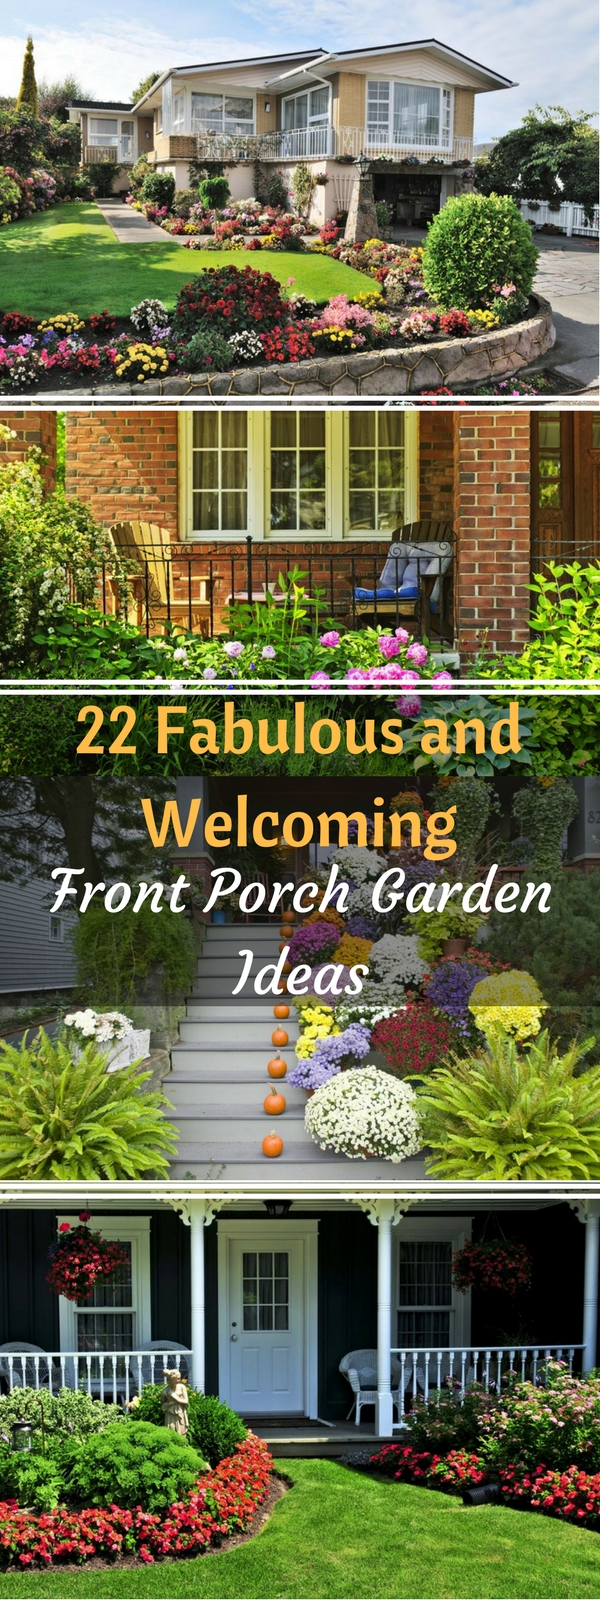 22 Fabulous and Welcoming Front Porch Garden Ideas